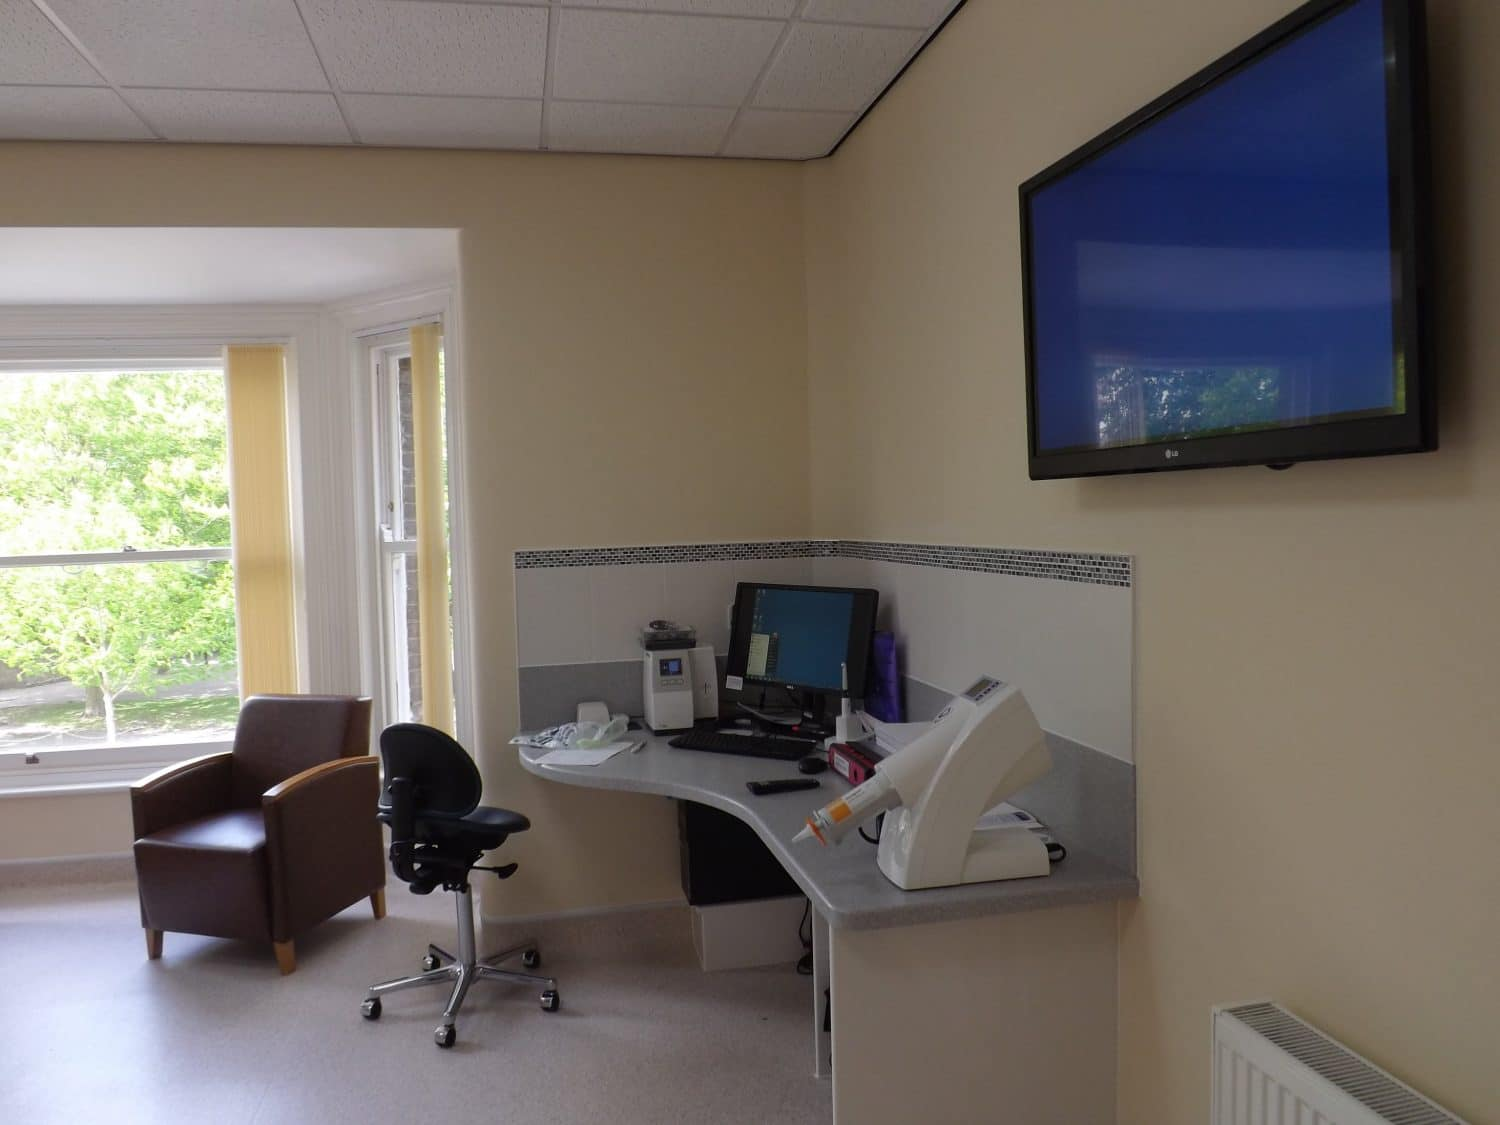 Dorchester south coast dental view 5